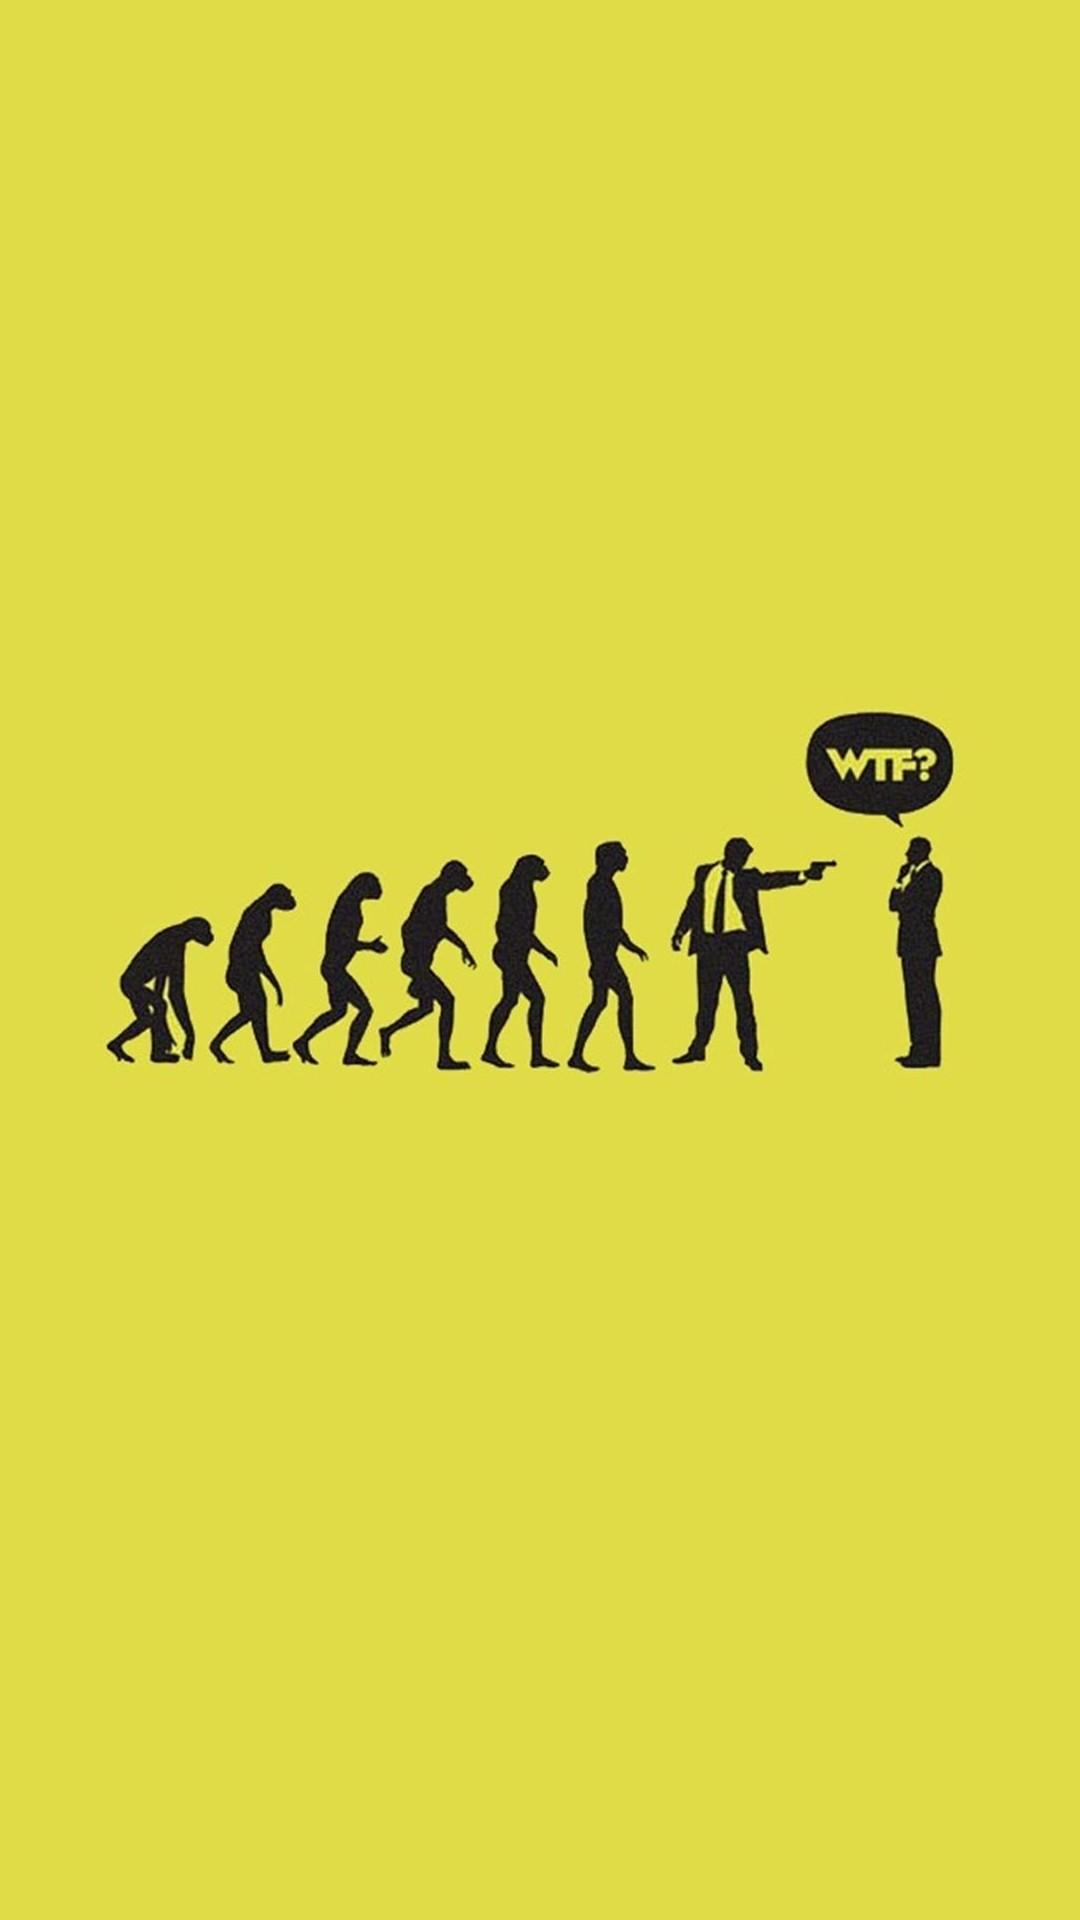 Aesthetic Funny Wallpapers Wallpaper Cave